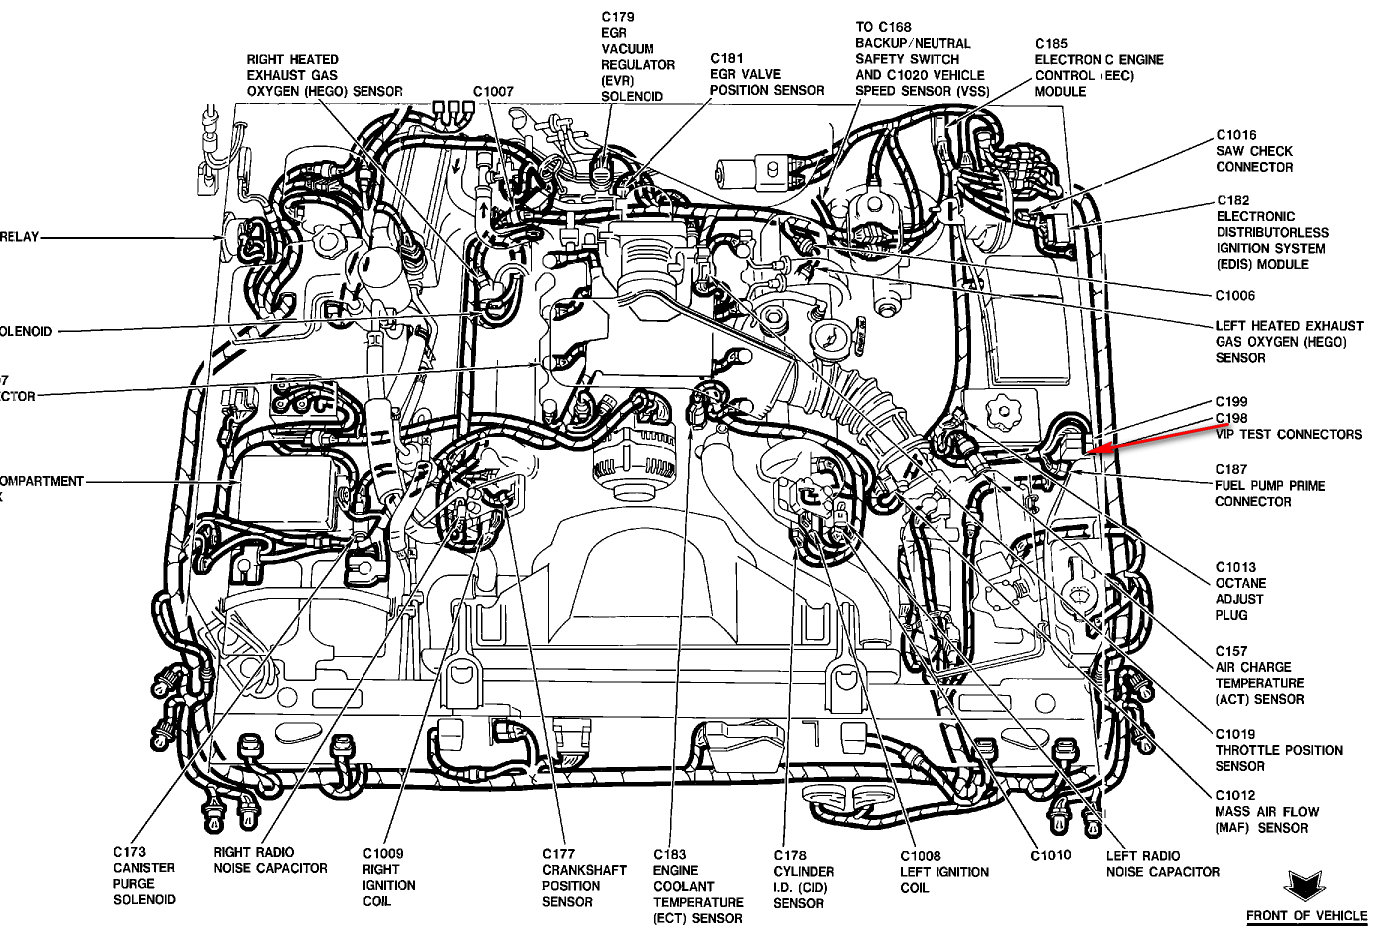 Color Coded Wiring Diagram For The Fuel Pump In A